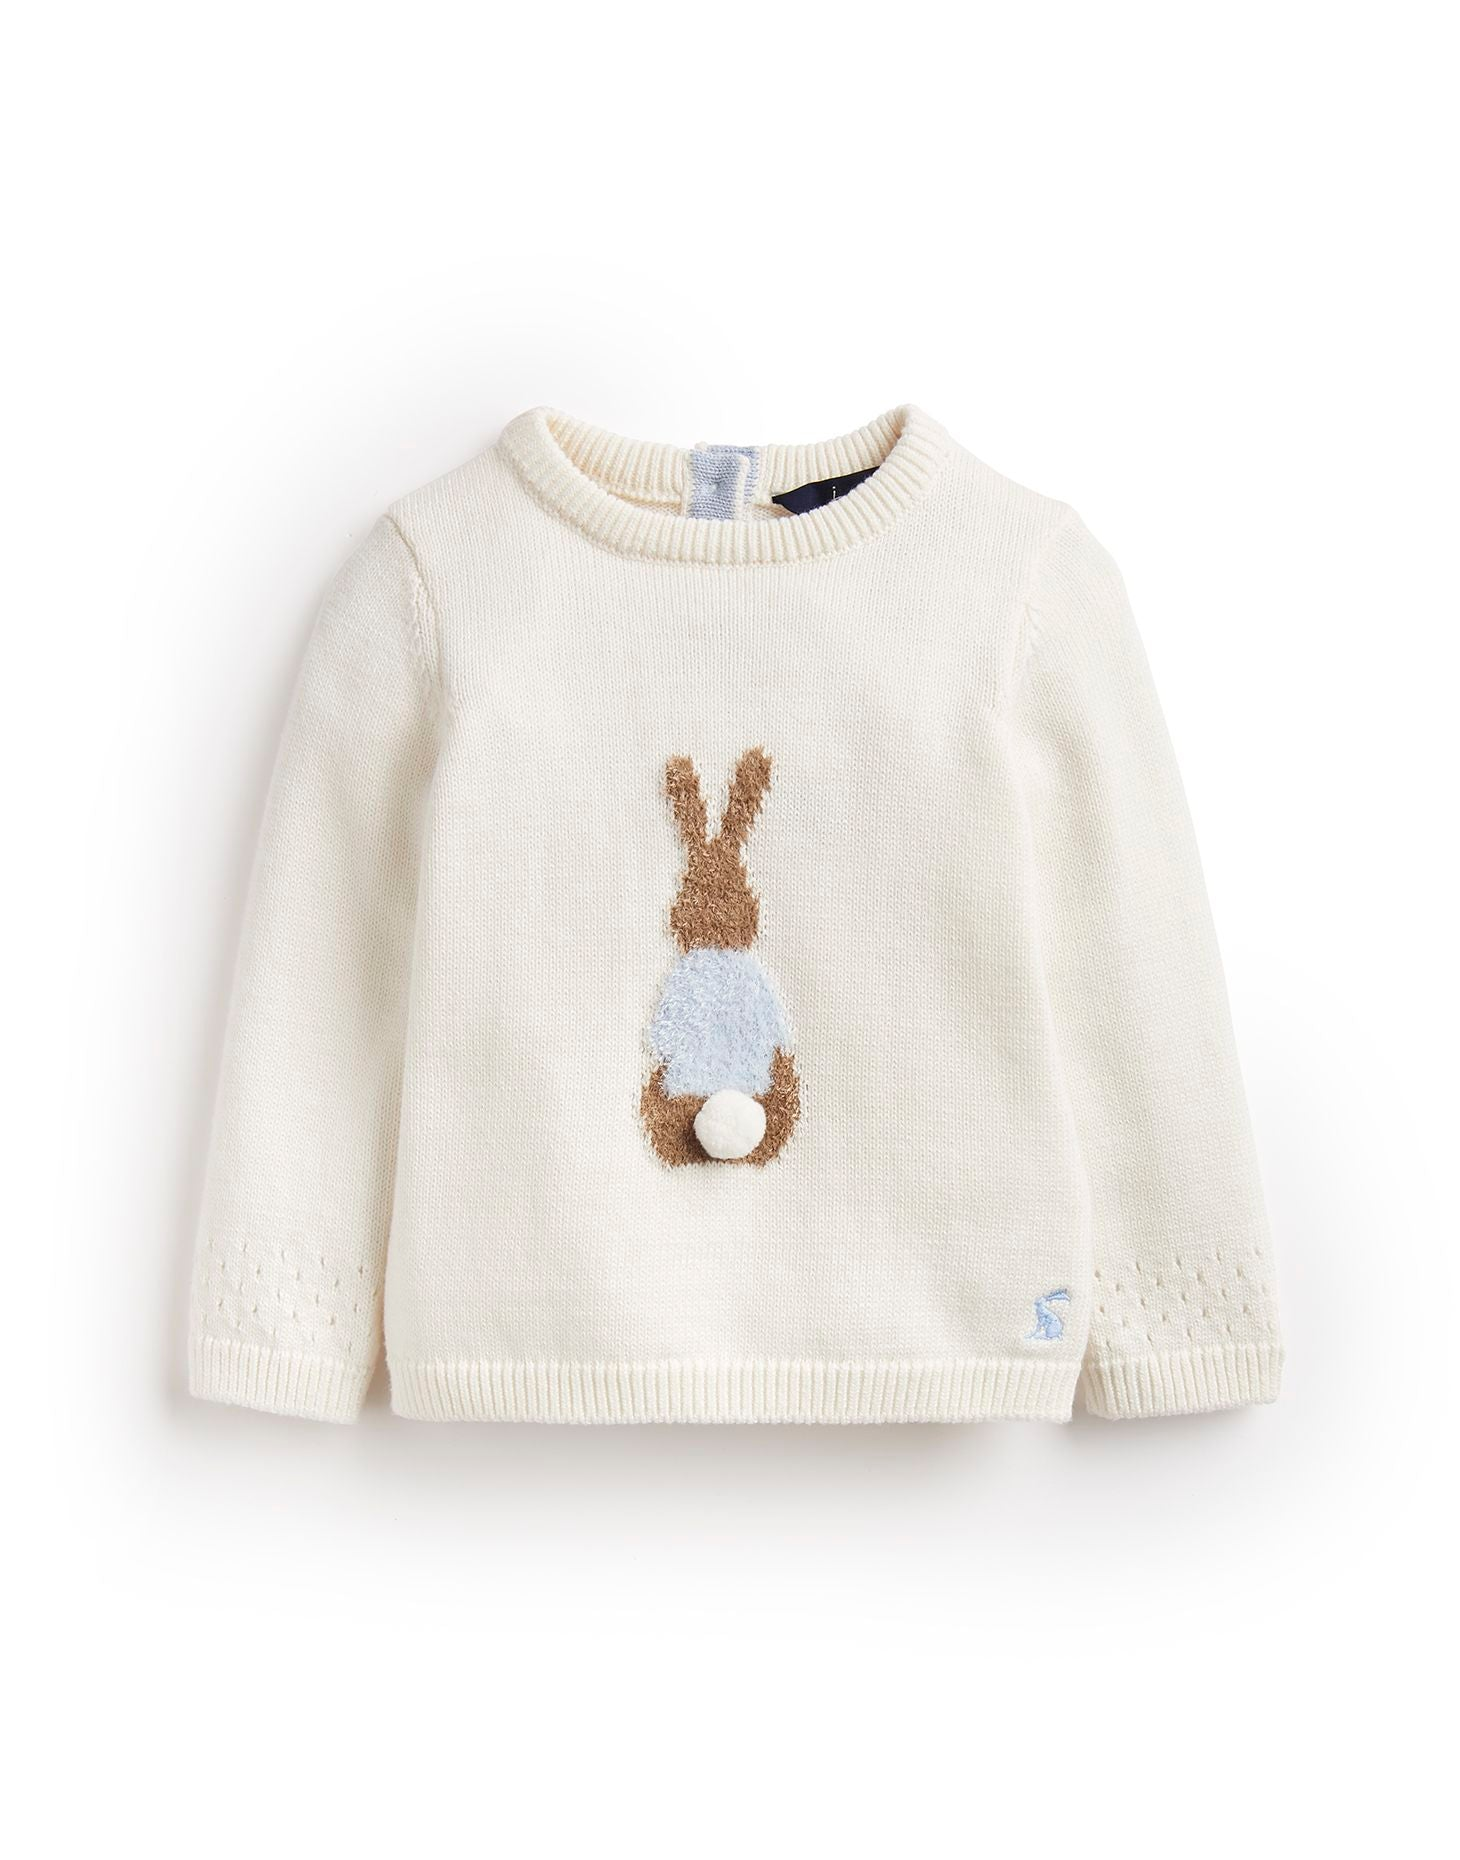 Peter Rabbit Sweater